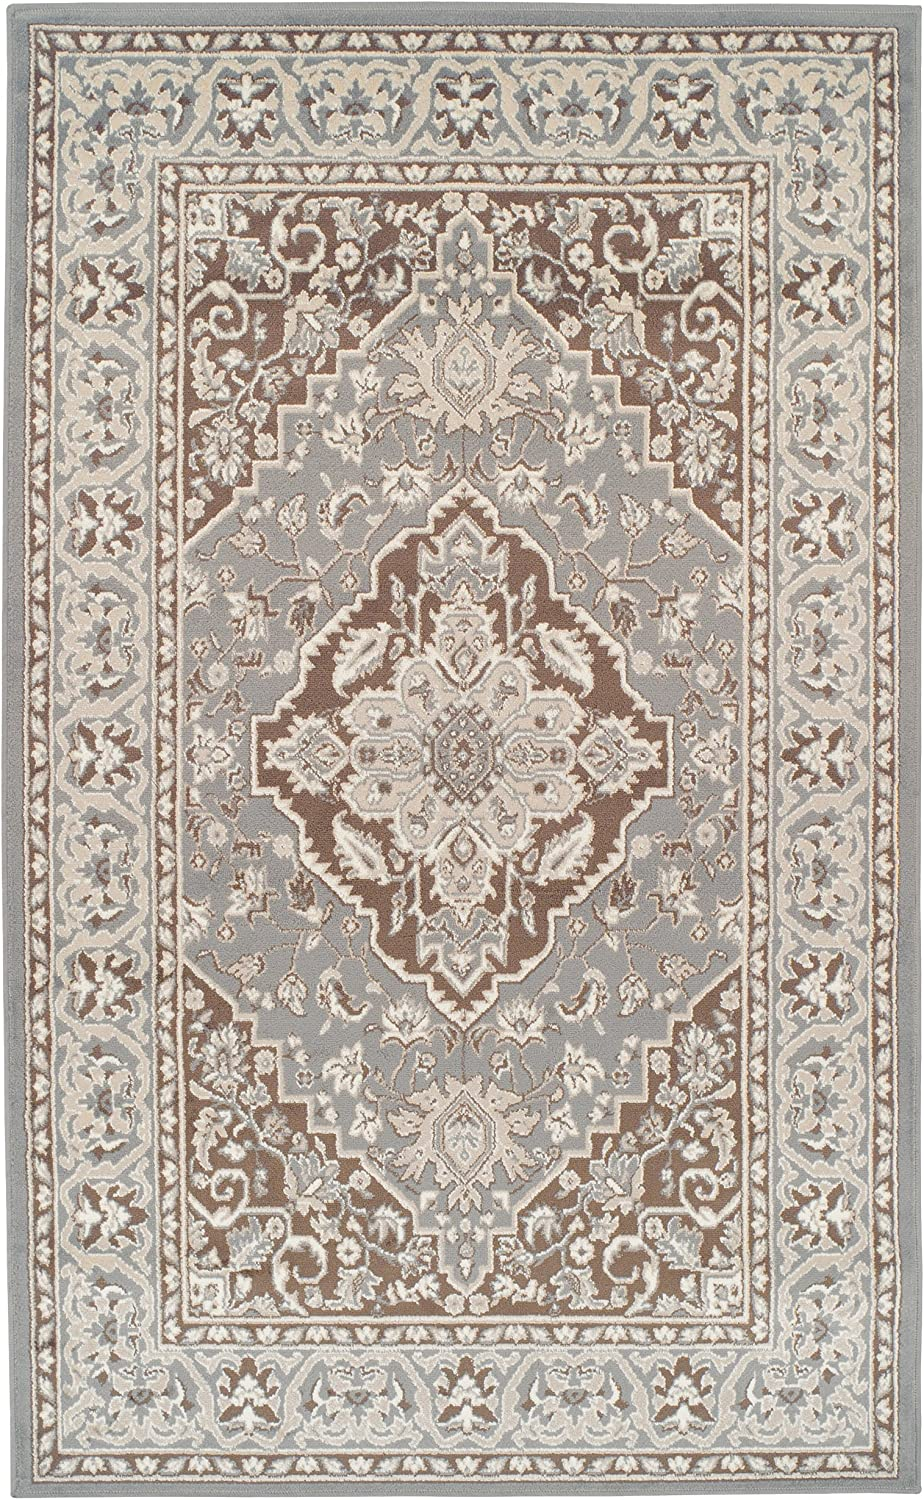 Superior Glendale Collection Area Rug Traditional Brown Oriental Rug 8 Mm Pile Jute Backing Floor Rug Grey 8 X 10 Furniture Decor